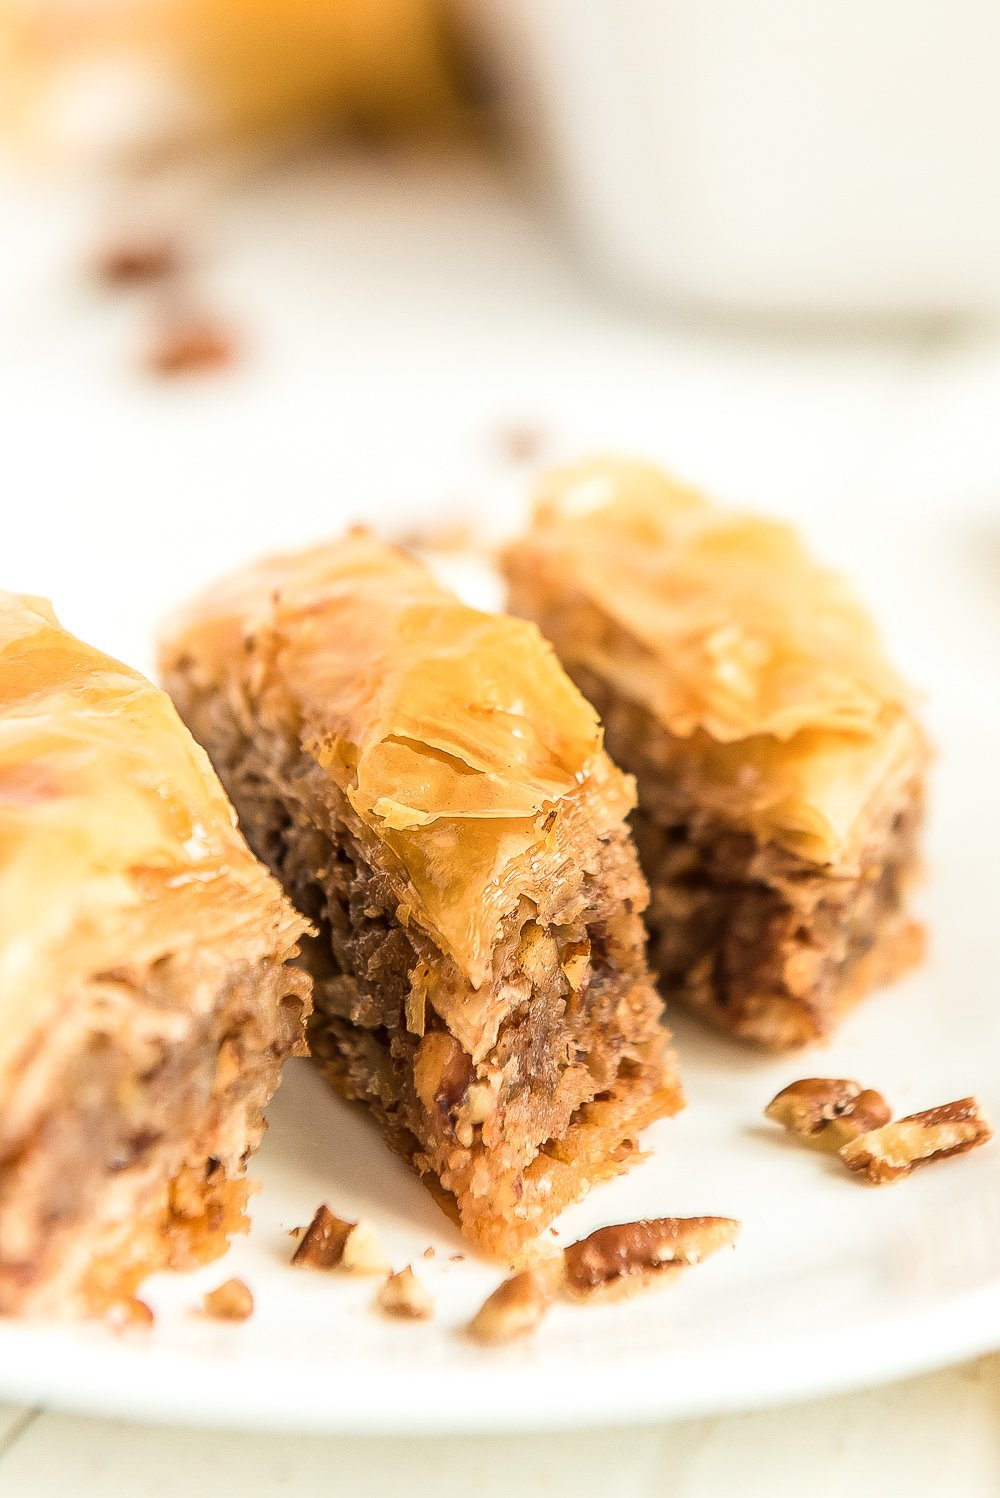 Three pieces of baklava on a white plate.